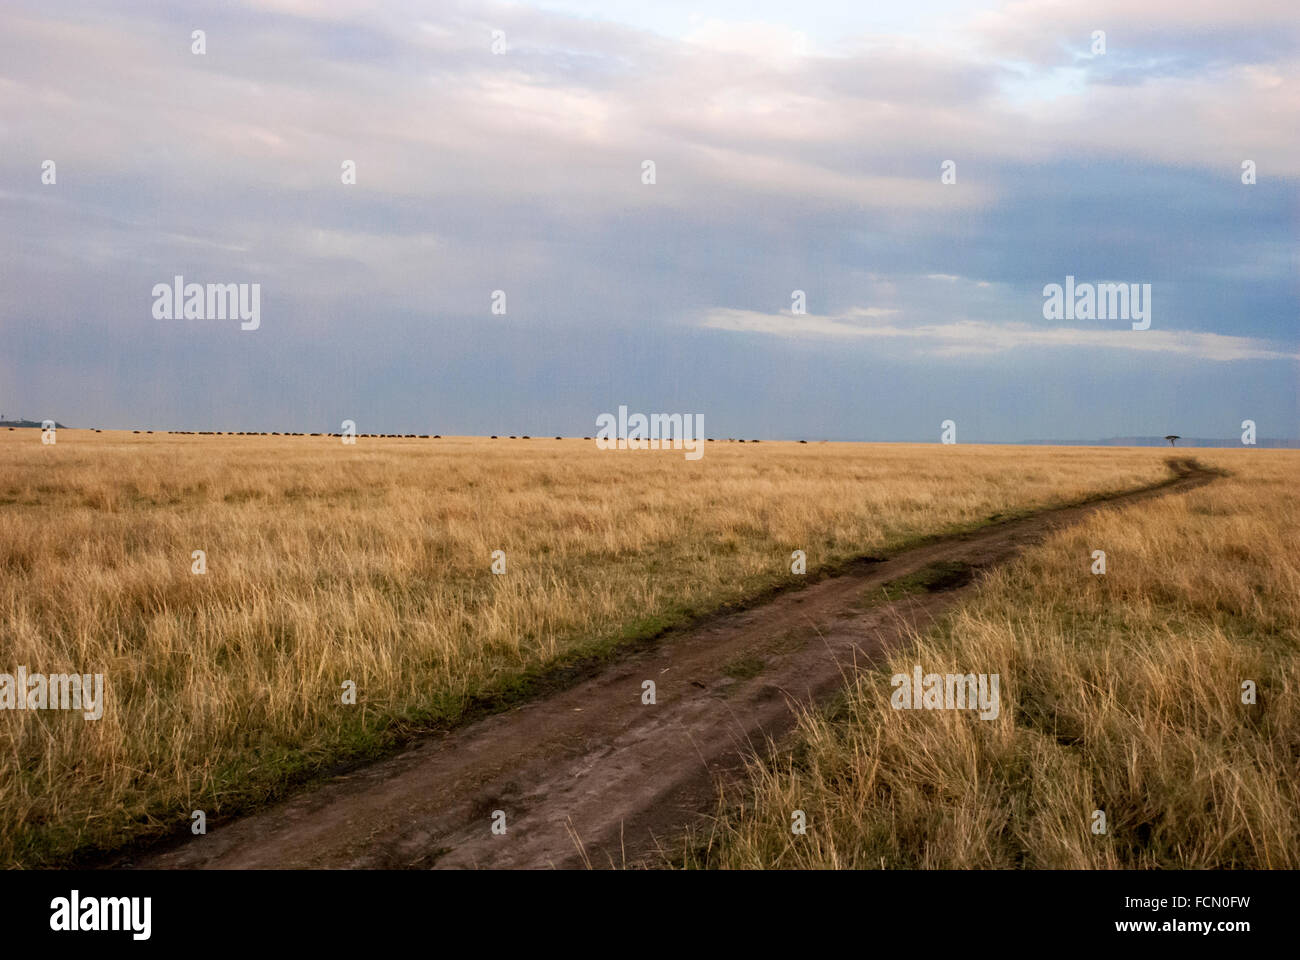 Dirt road under a cloudy sky through the yellow grass in the Masai Mara National Reserve, Kenya, East Africa Stock Photo